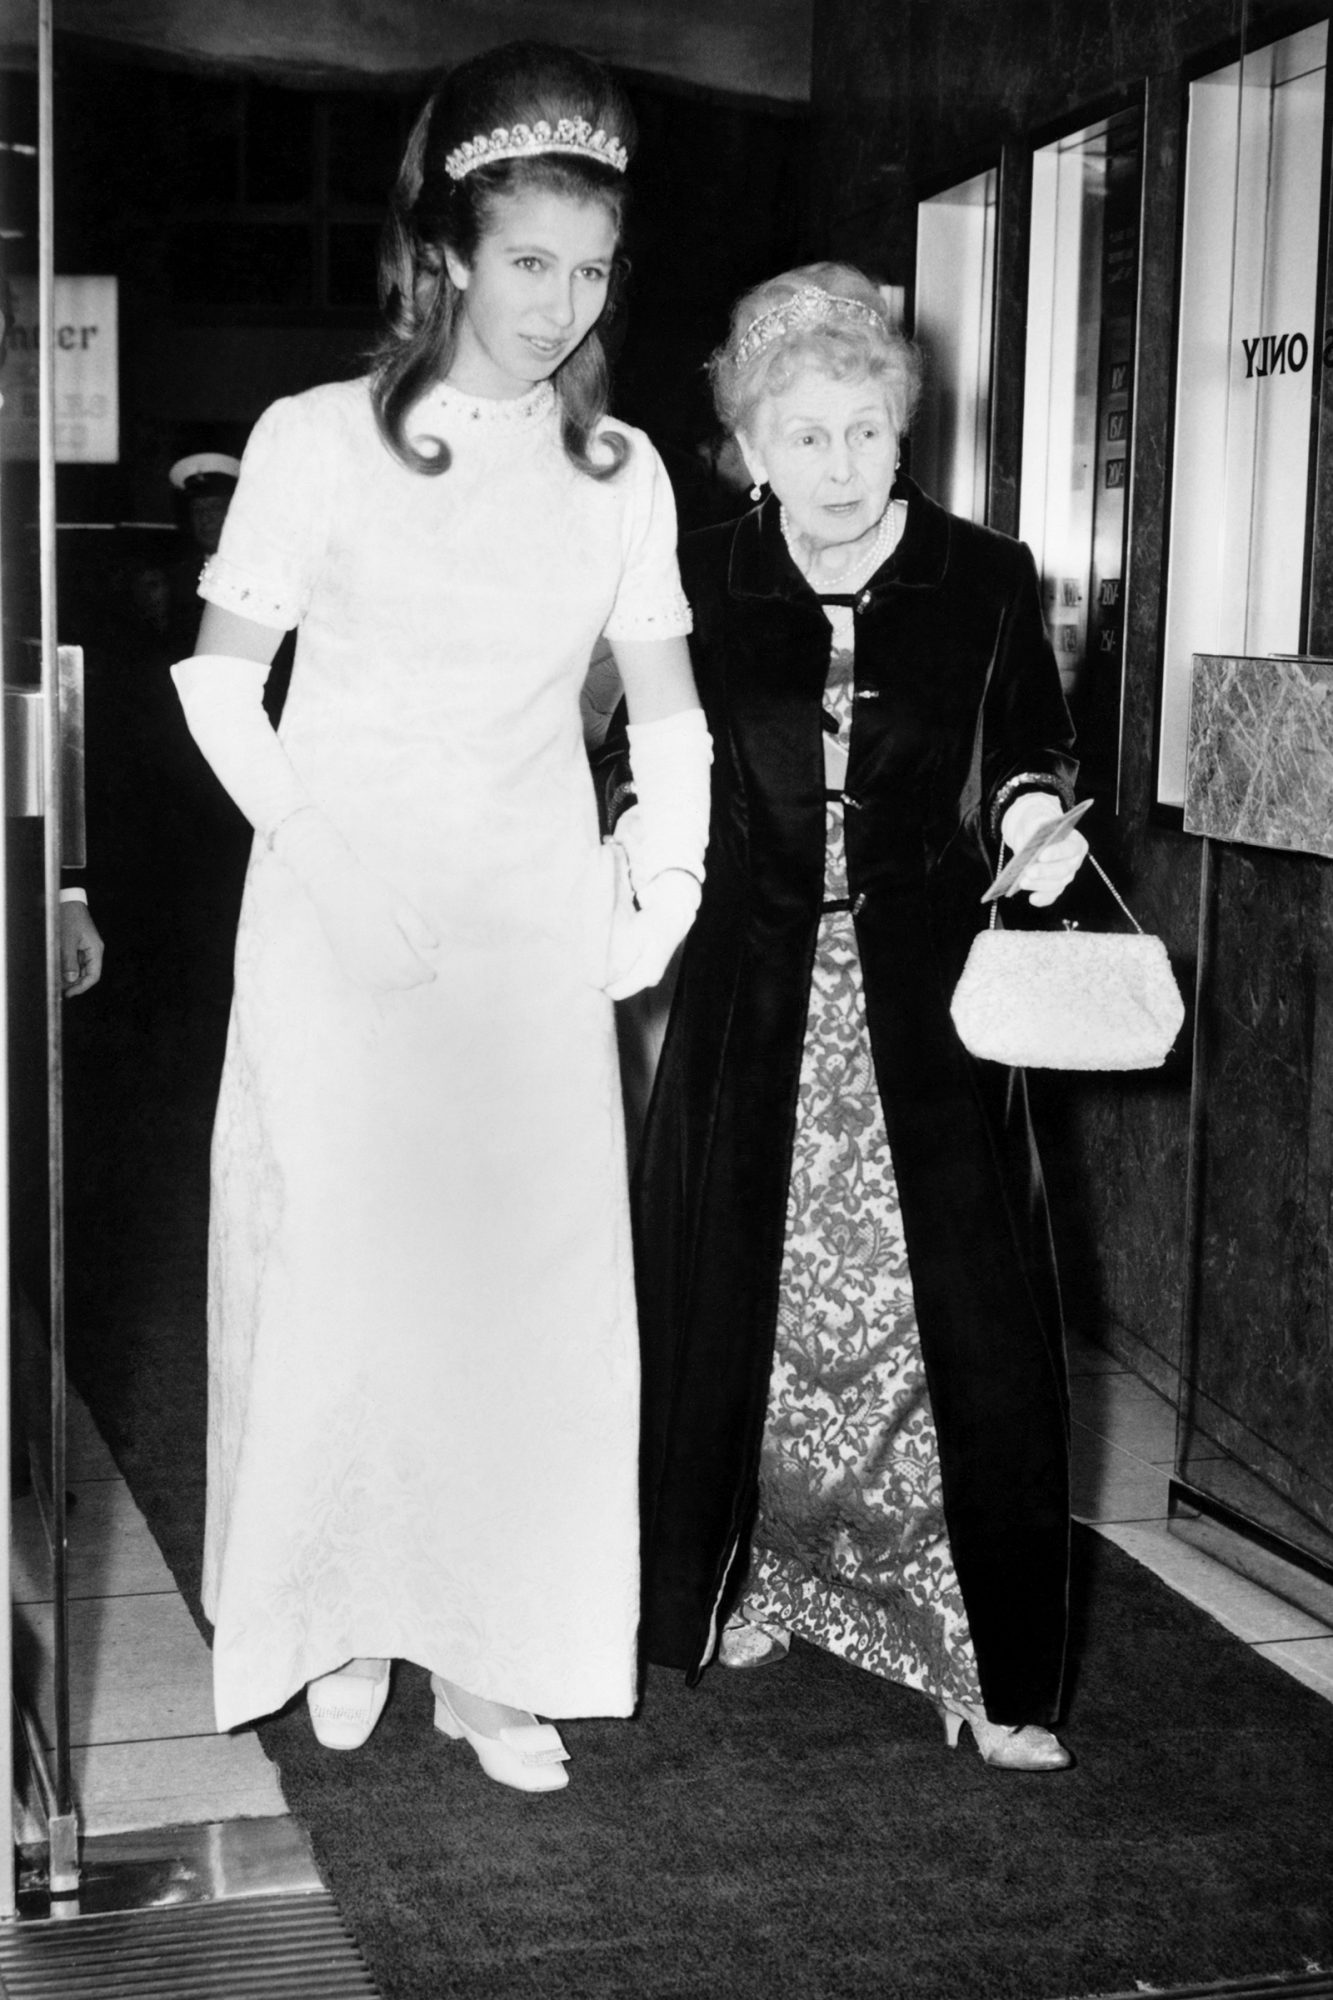 A Royal night at the cinema. (Left to right) Princess Anne and Princess Alice arriving at the Warner Theatre. November 1969